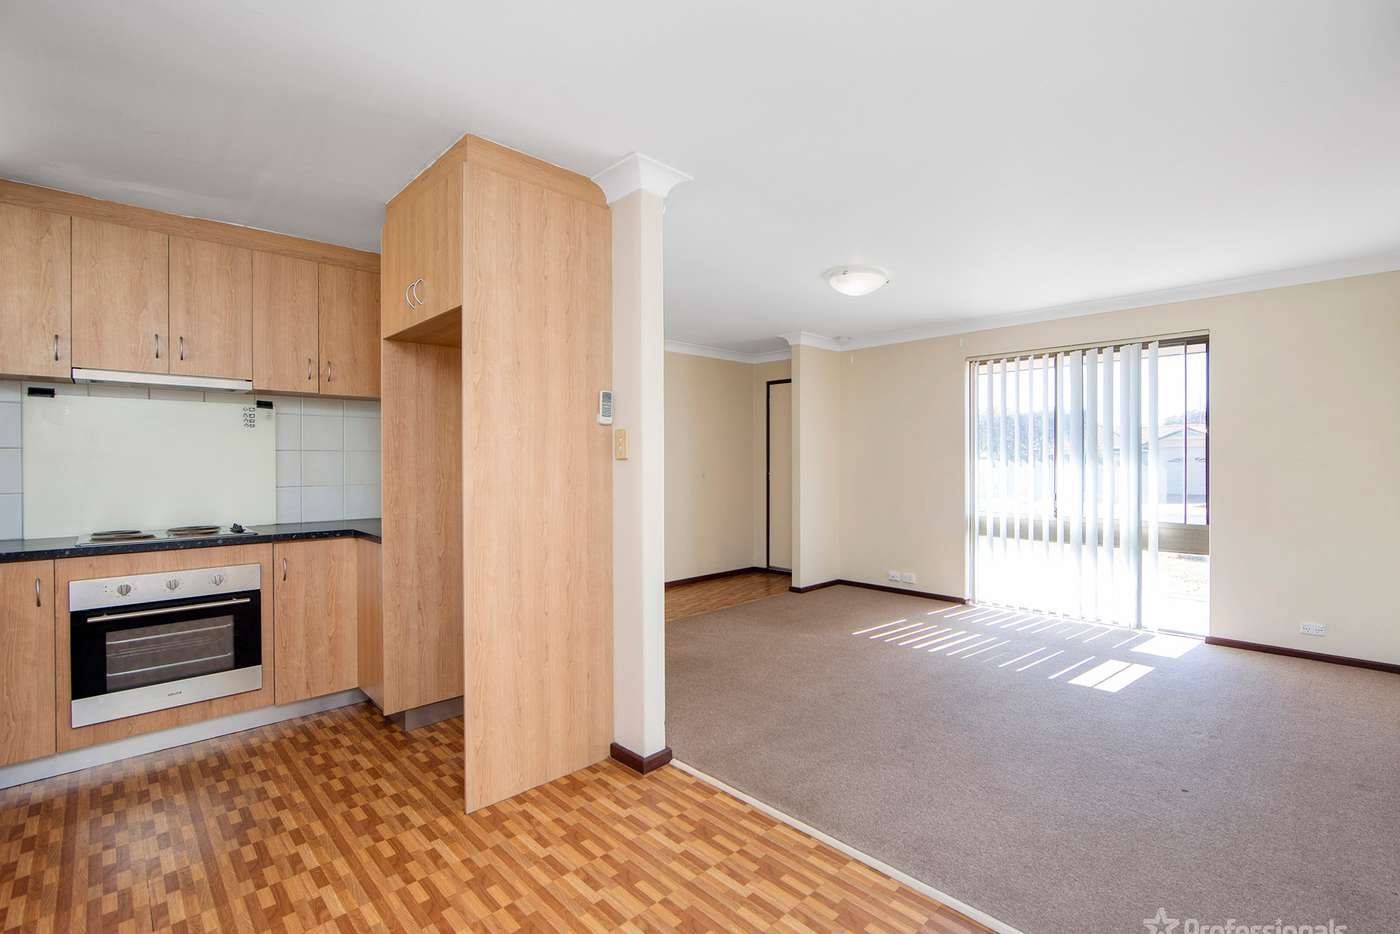 Seventh view of Homely house listing, 38 St Ives Drive, Yanchep WA 6035